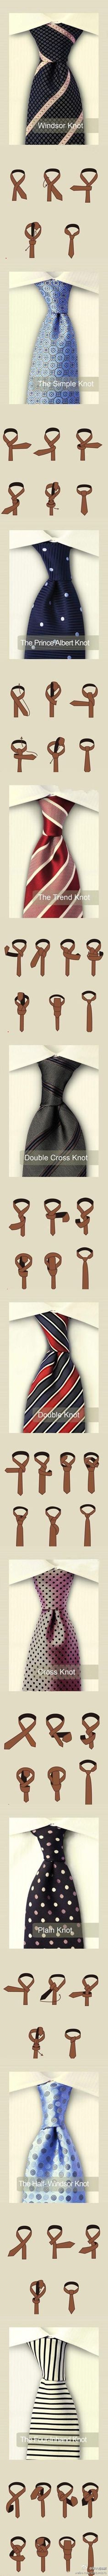 How to Tie a Man's Neck Tie - Apparently this is a great mystery for many men and thus qualifies as a secret of life. Really like the design of this infographic as it can easily be used by men of any linguistic background.